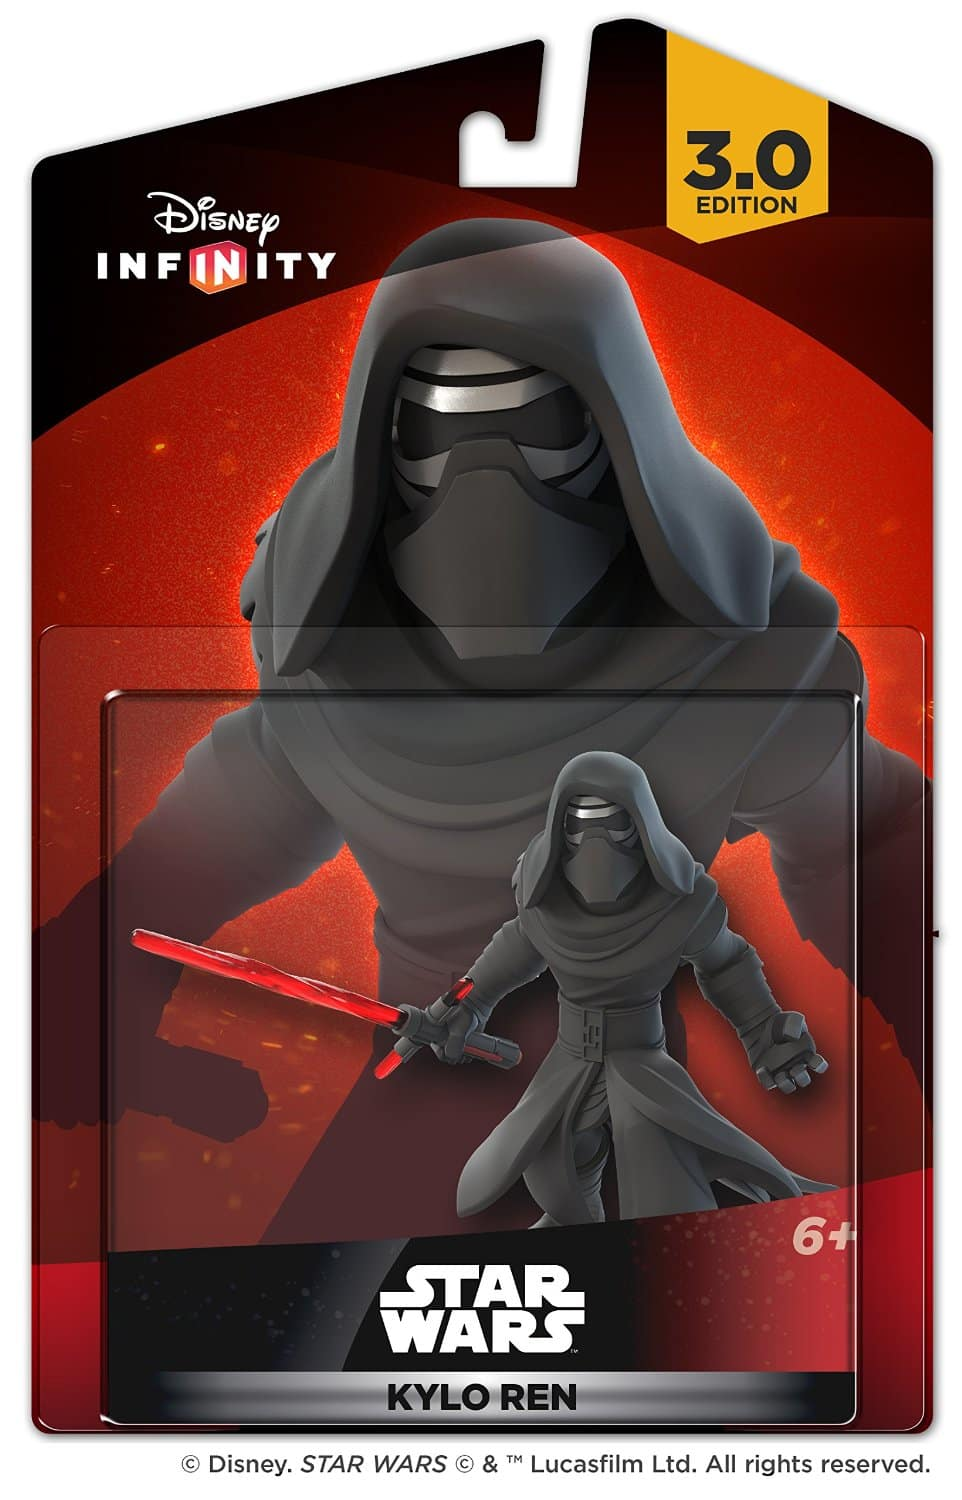 Disney Infinity 3.0 Kylo Ren Figure Pre Order $9 with Free In Store Pick up